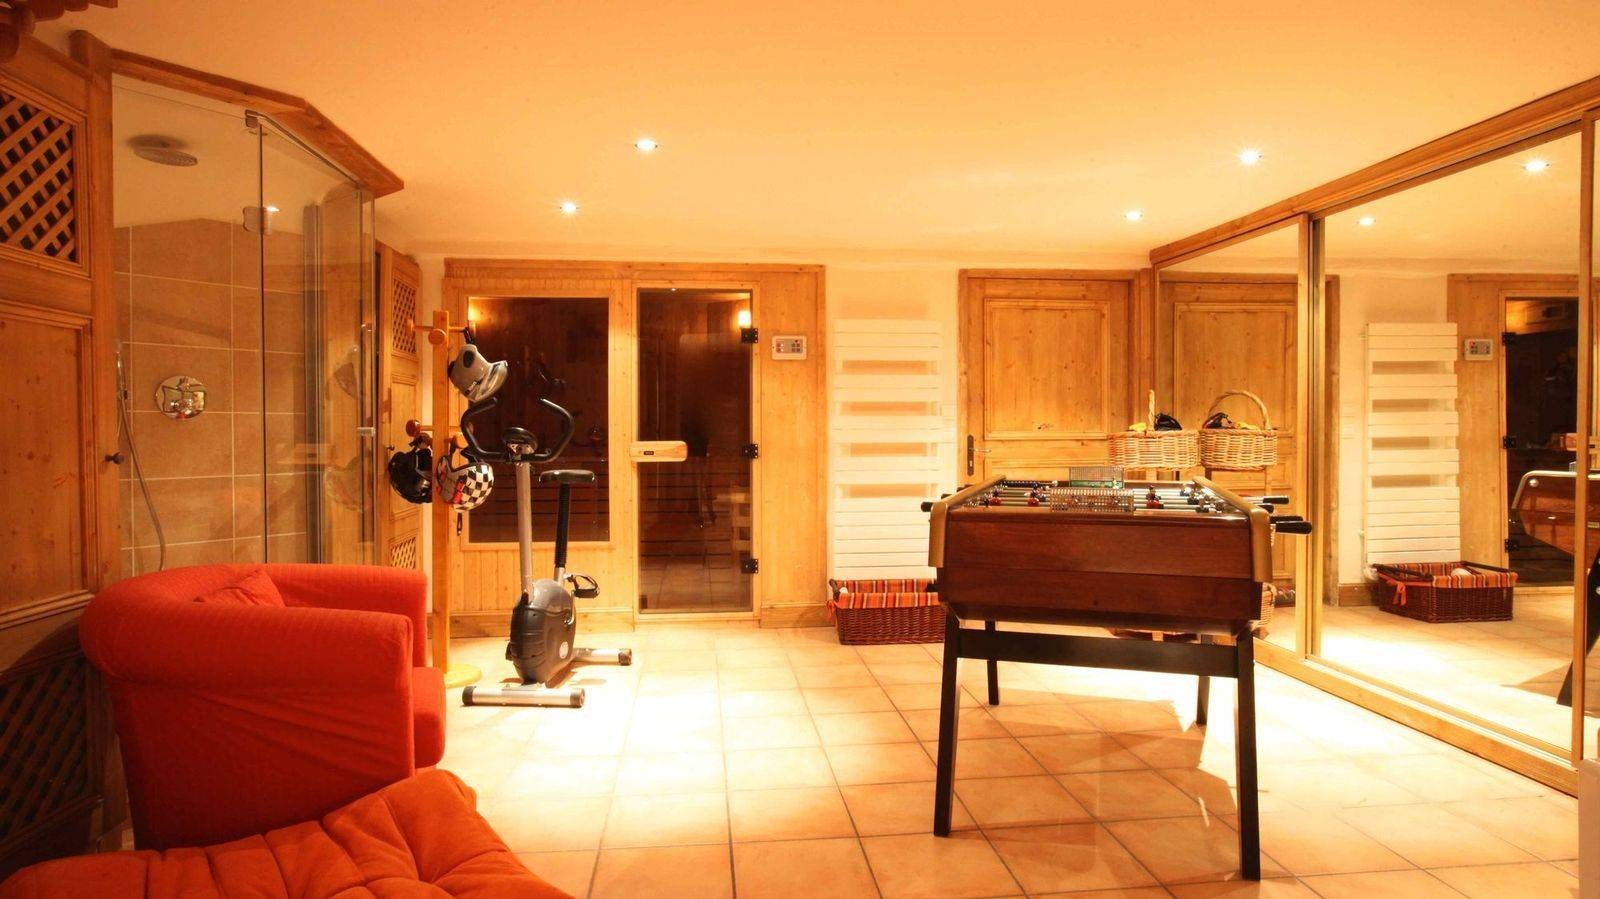 Courchevel 1850 Location Chalet Luxe Tantalite  Babyfoot